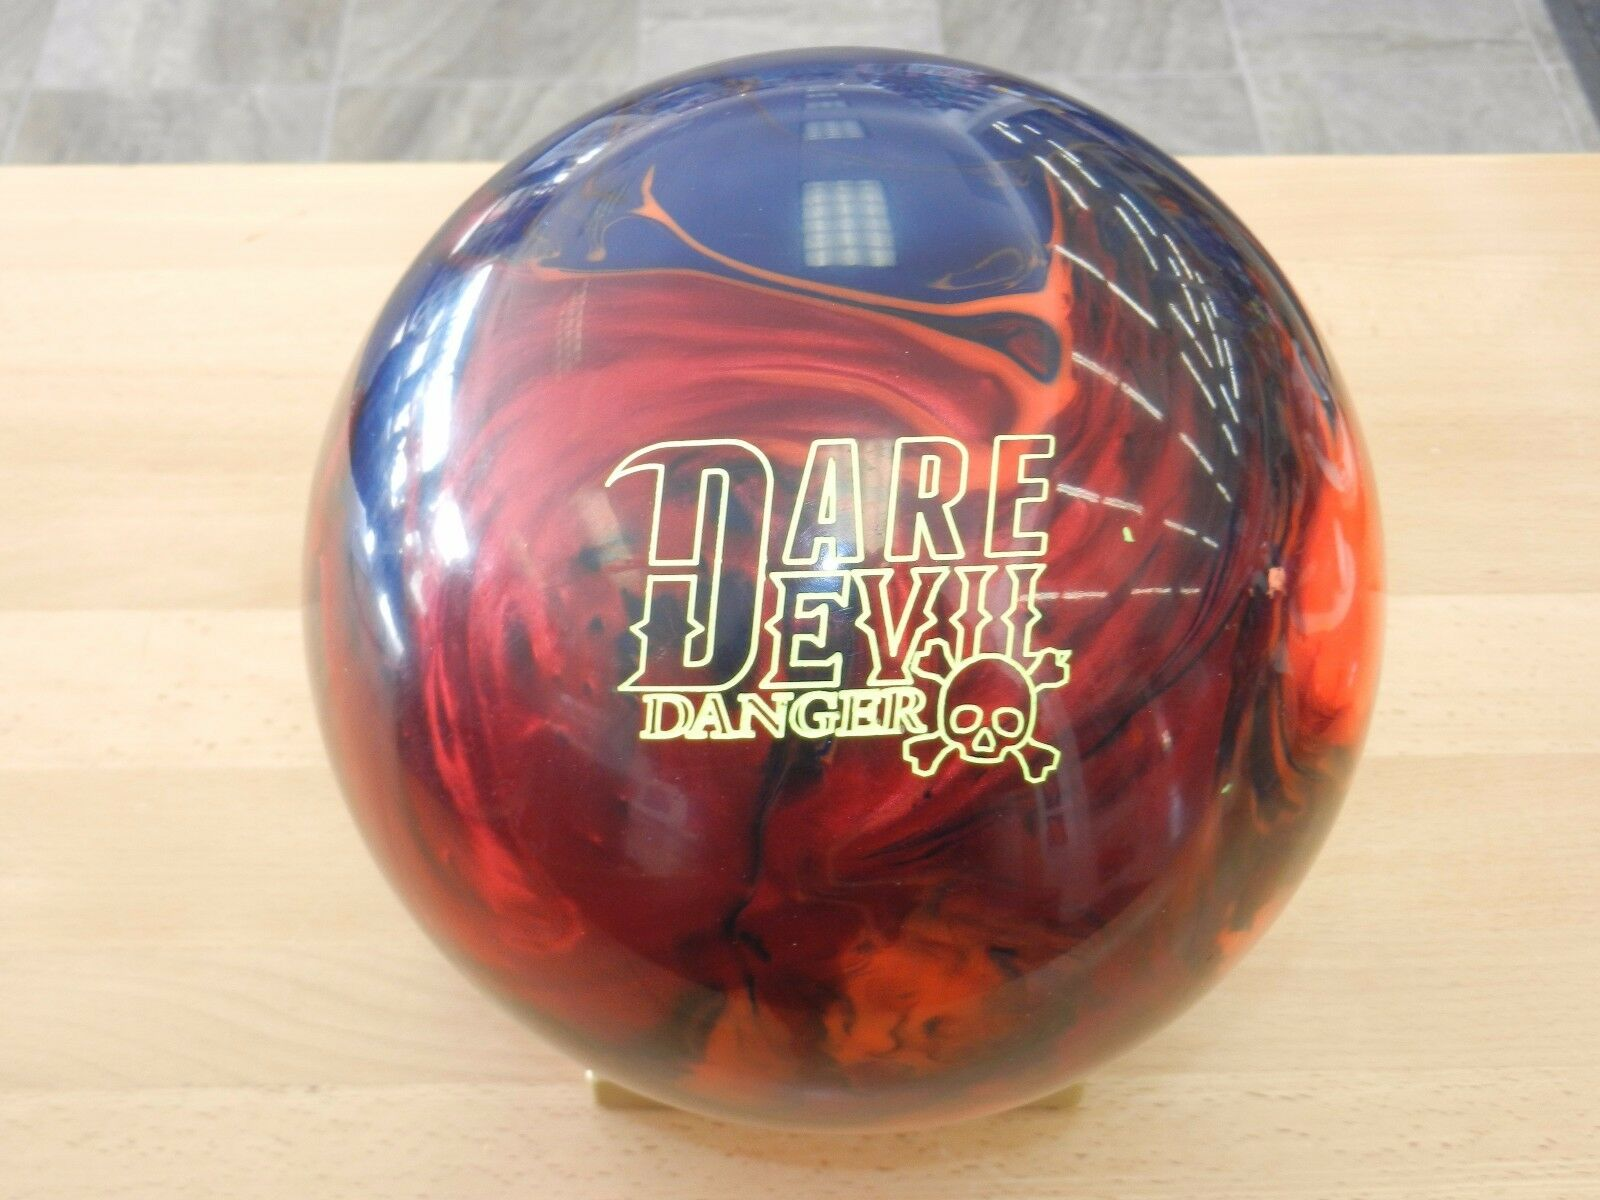 """14 Roto Grip Dare Devil Danger Bowling Ball 14.3/3-3.5""""/2.78 Tw"""